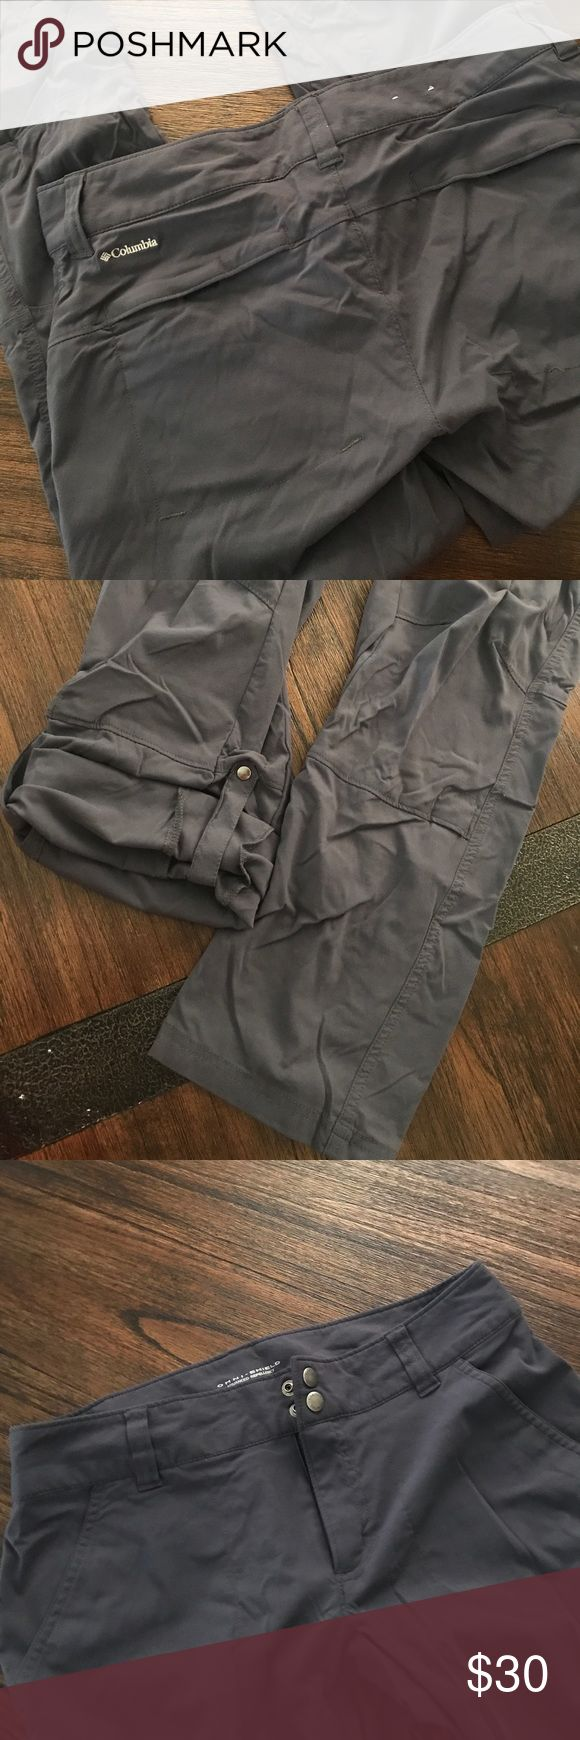 Columbia omnishield cargo pants Softest breathable material can be rolled up and hooked to be capri size 8 short brand new just wrinkled from being stored away 🤷♀️ Columbia Pants Track Pants & Joggers